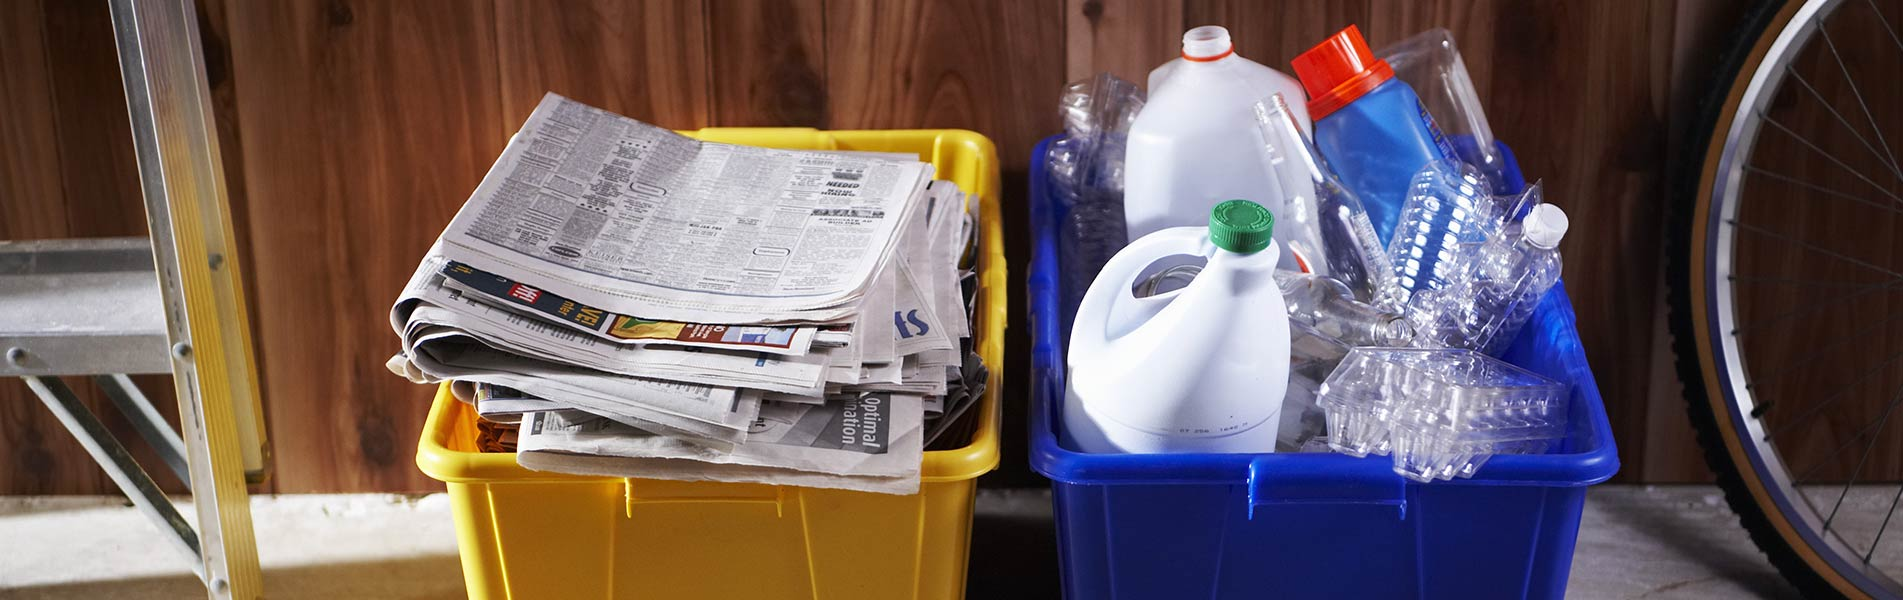 Efficient waste clearance from your premises!